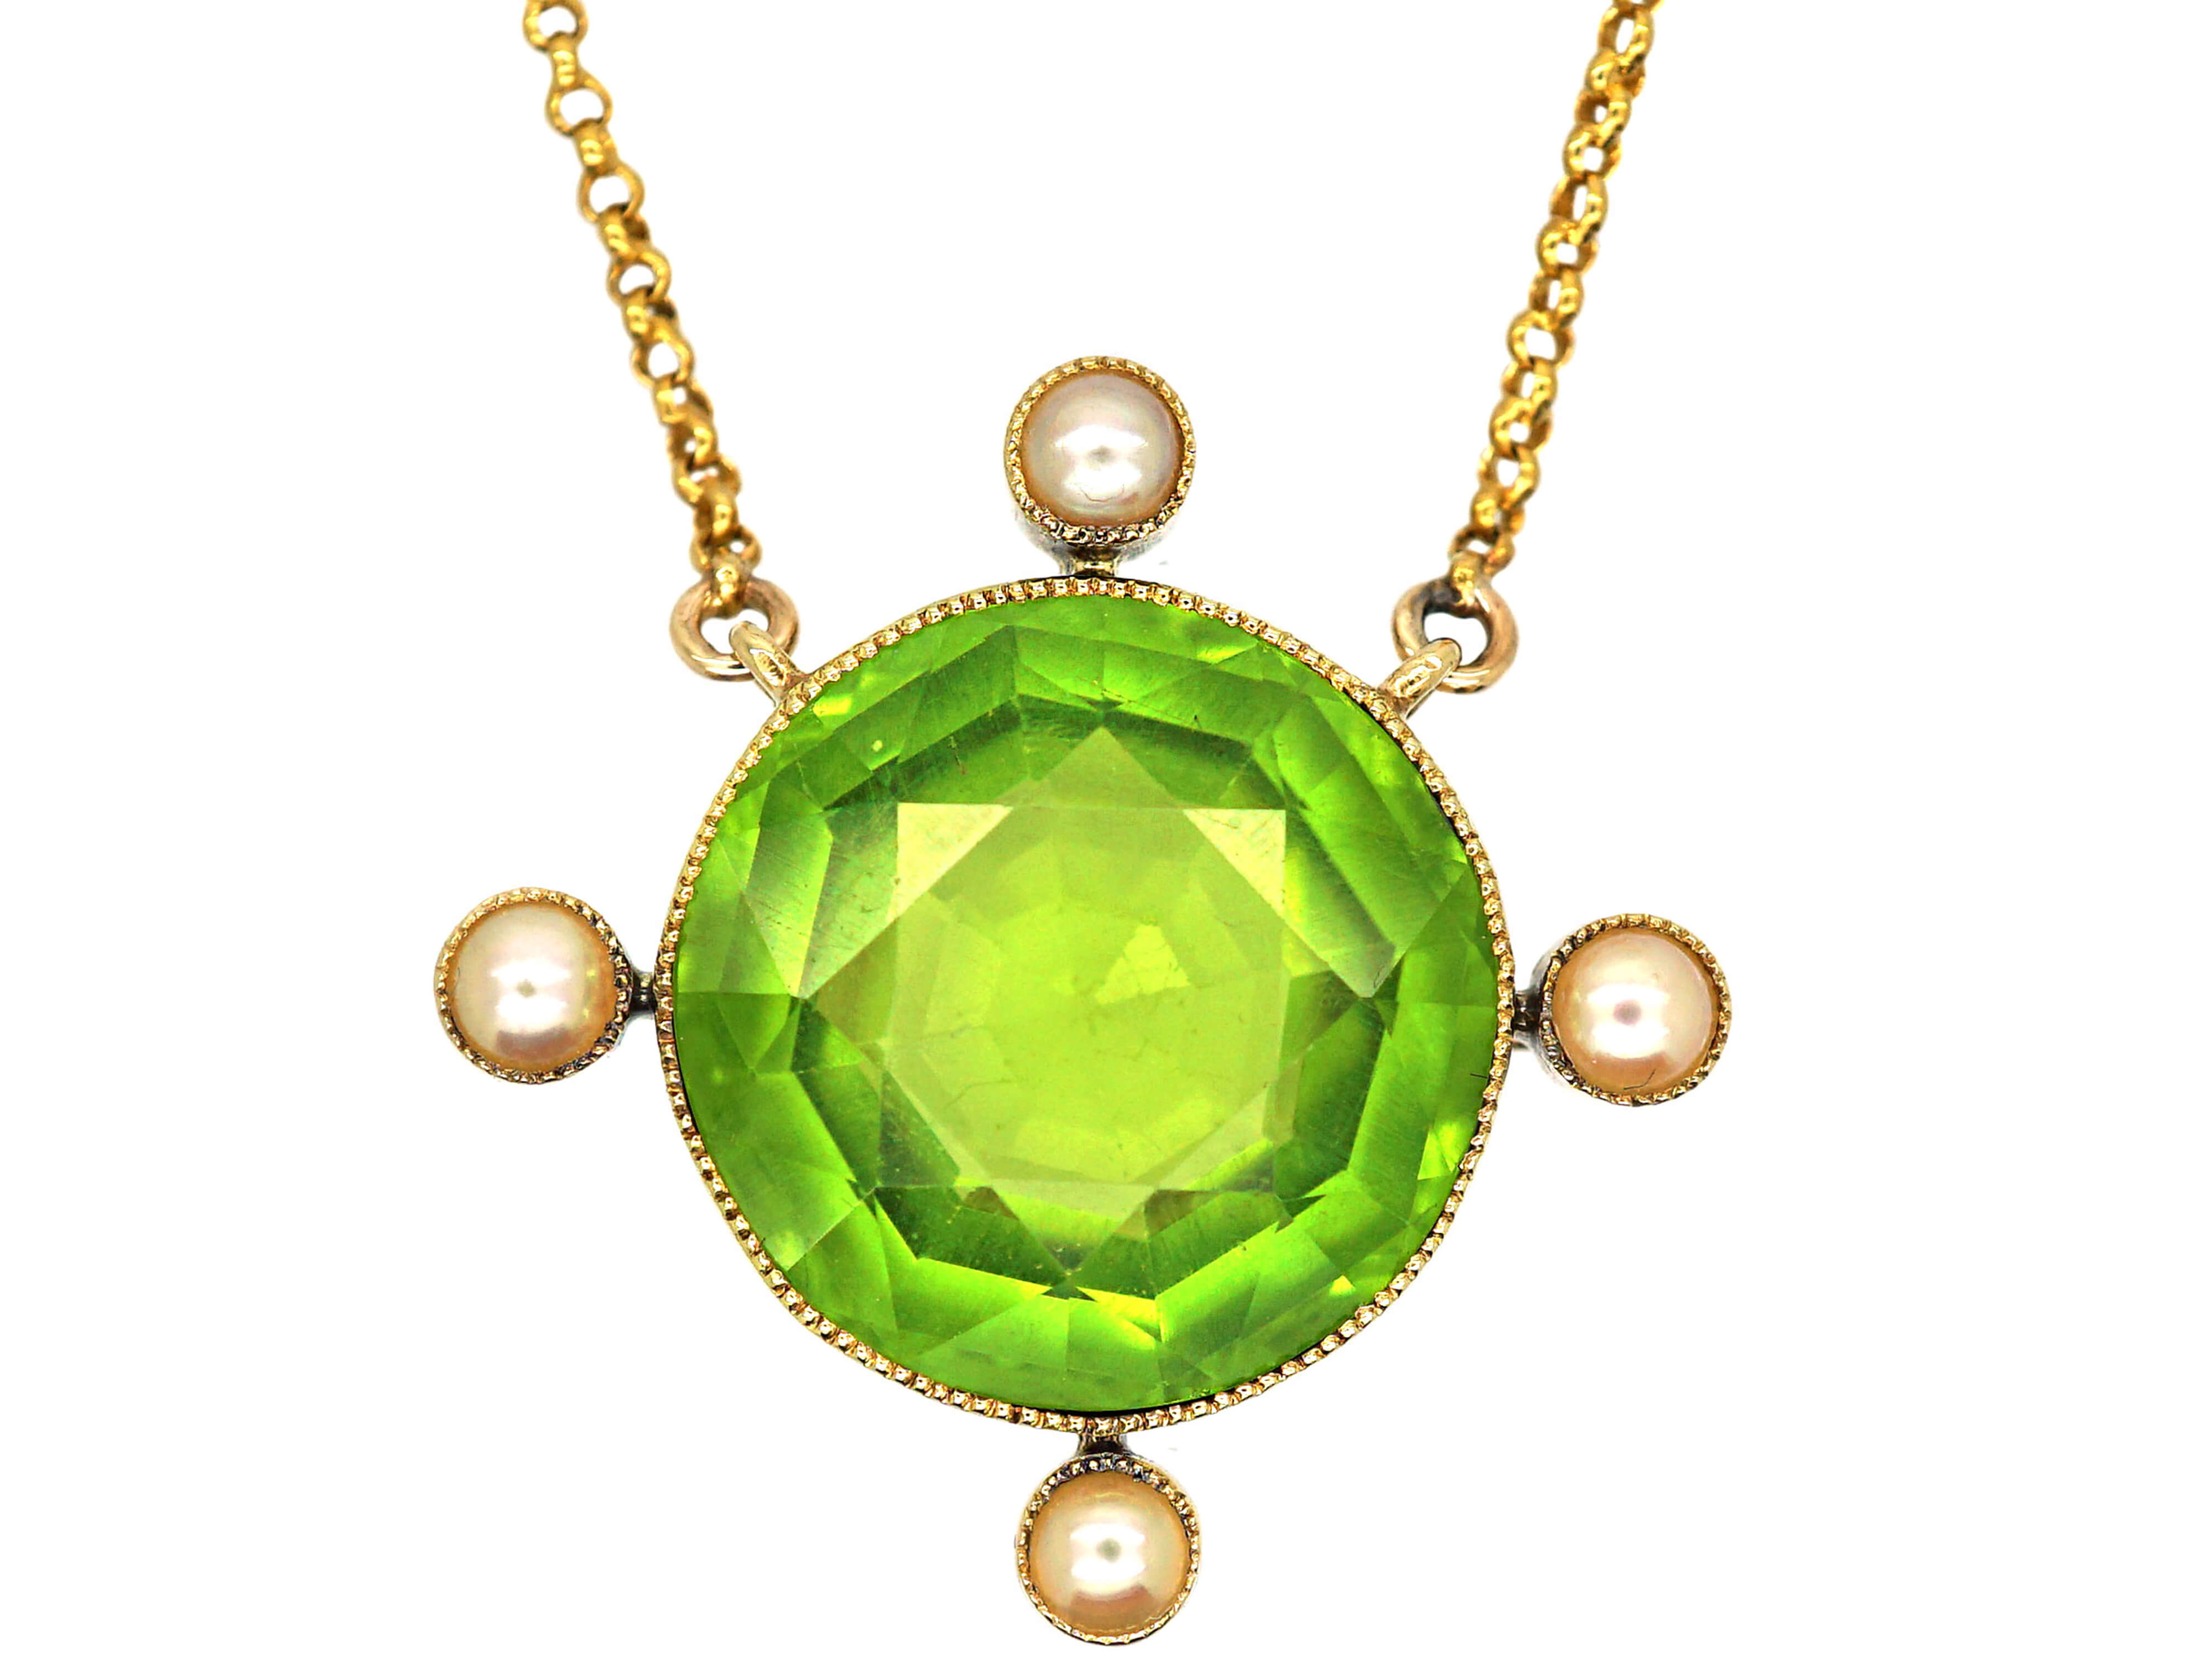 Edwardian 15ct Gold, Large Peridot & Natural Pearl Pendant on 15ct Gold Chain